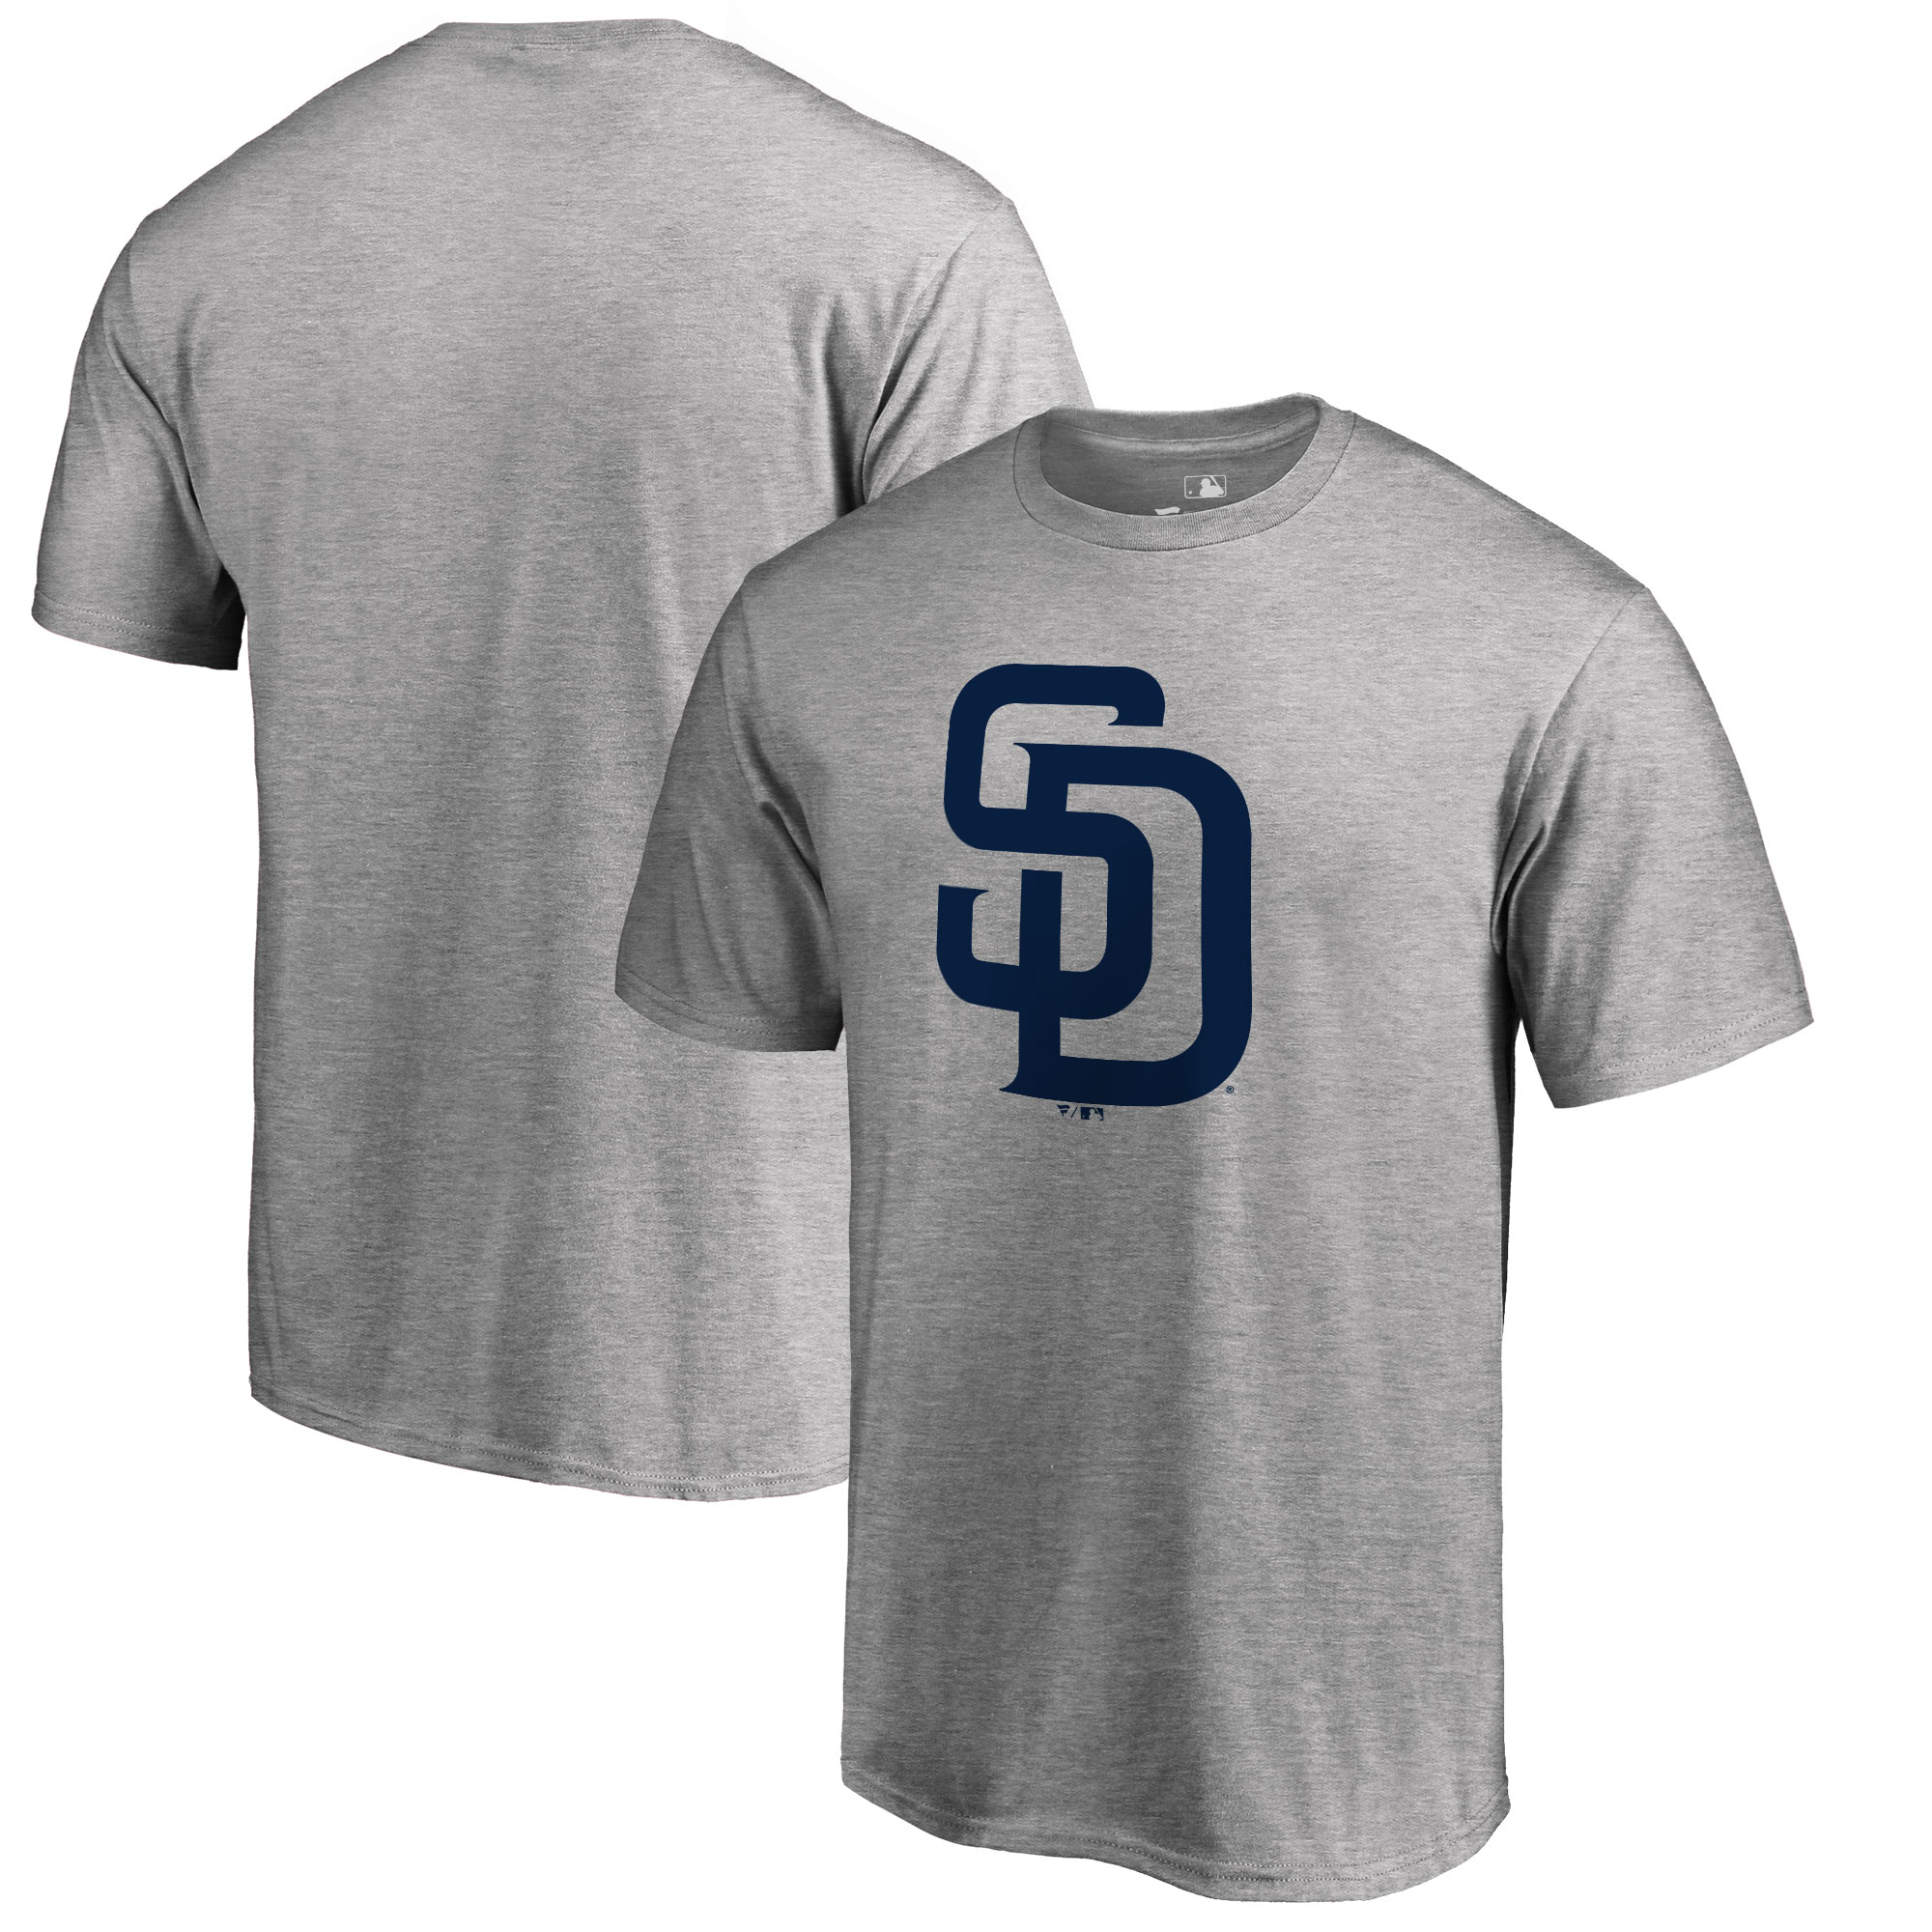 San Diego Padres Big & Tall Primary Team Logo T-Shirt - Ash